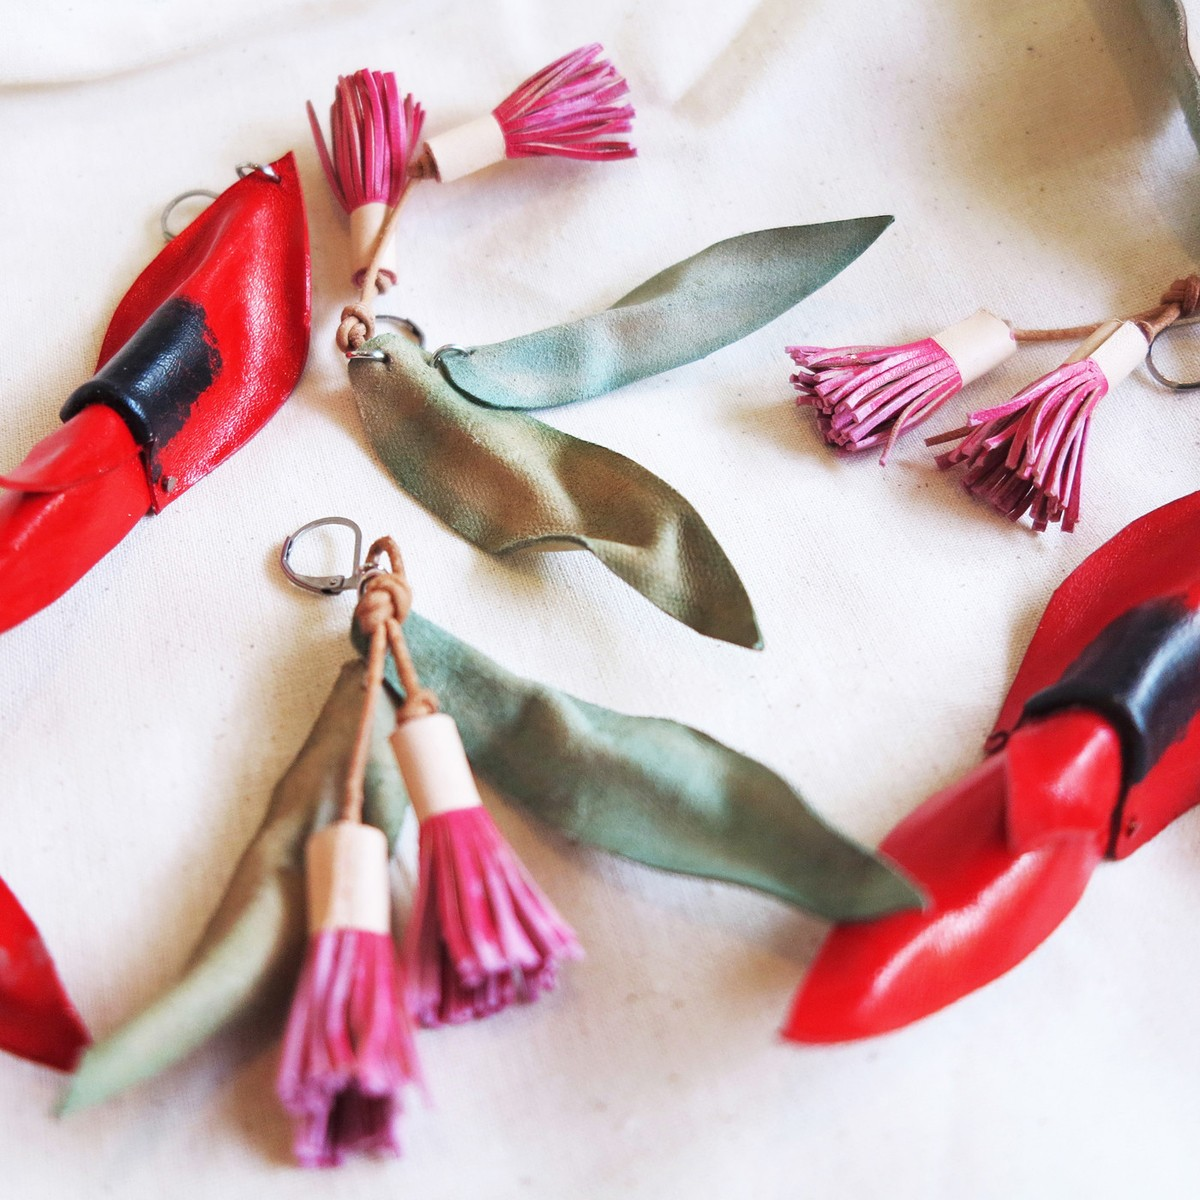 Flowering gum and Sturt Desert Pea Australian botanical inspired artisan leather earrings handcrafted in Adelaide by DONE by Matea